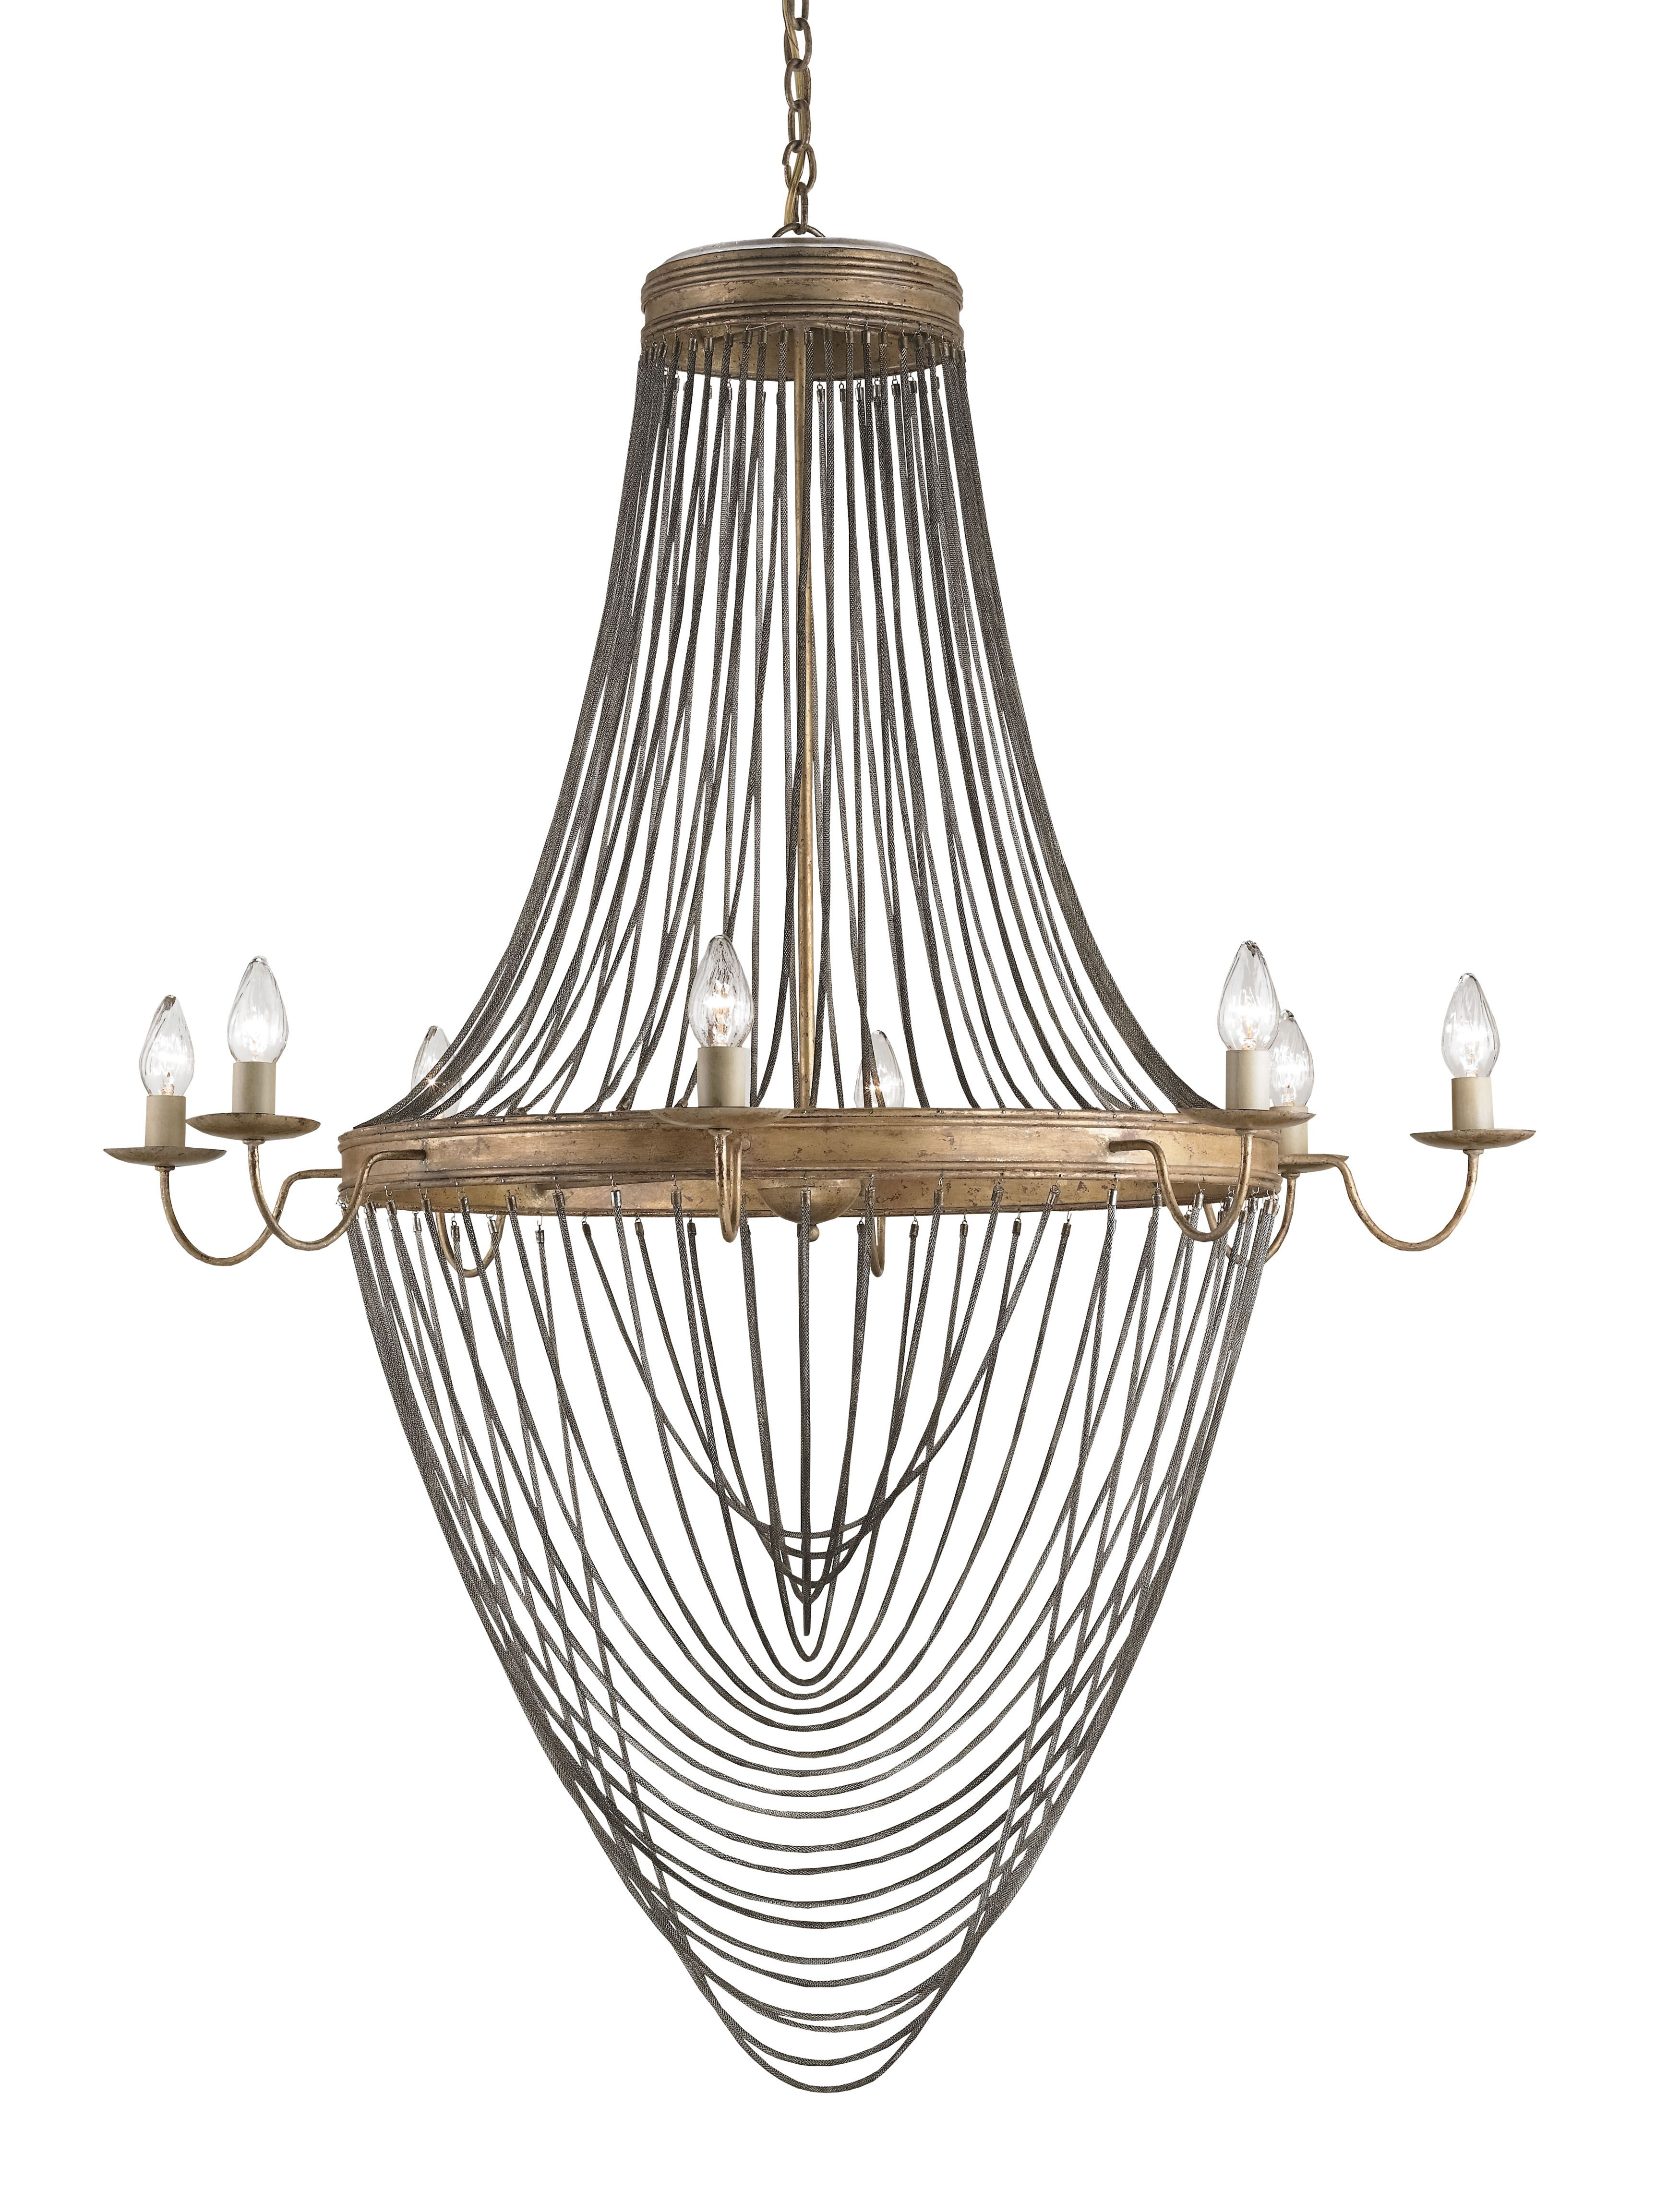 Currey Co Lucien Chandelier 9412 Material Wrought Iron – Antique Chandelier Chain